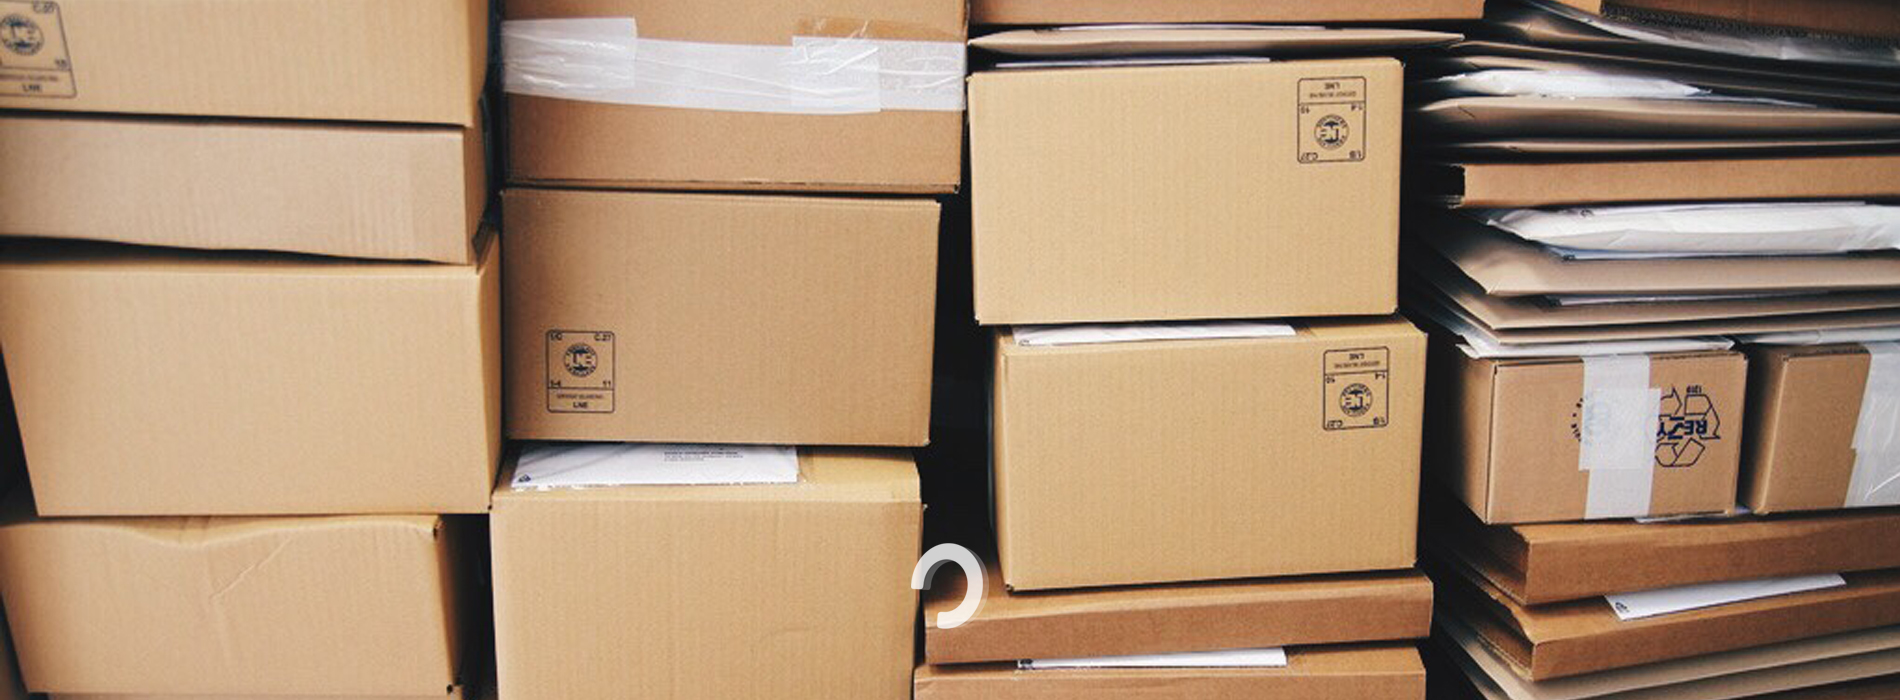 How Can Online Retailers Minimize Returns Rates?